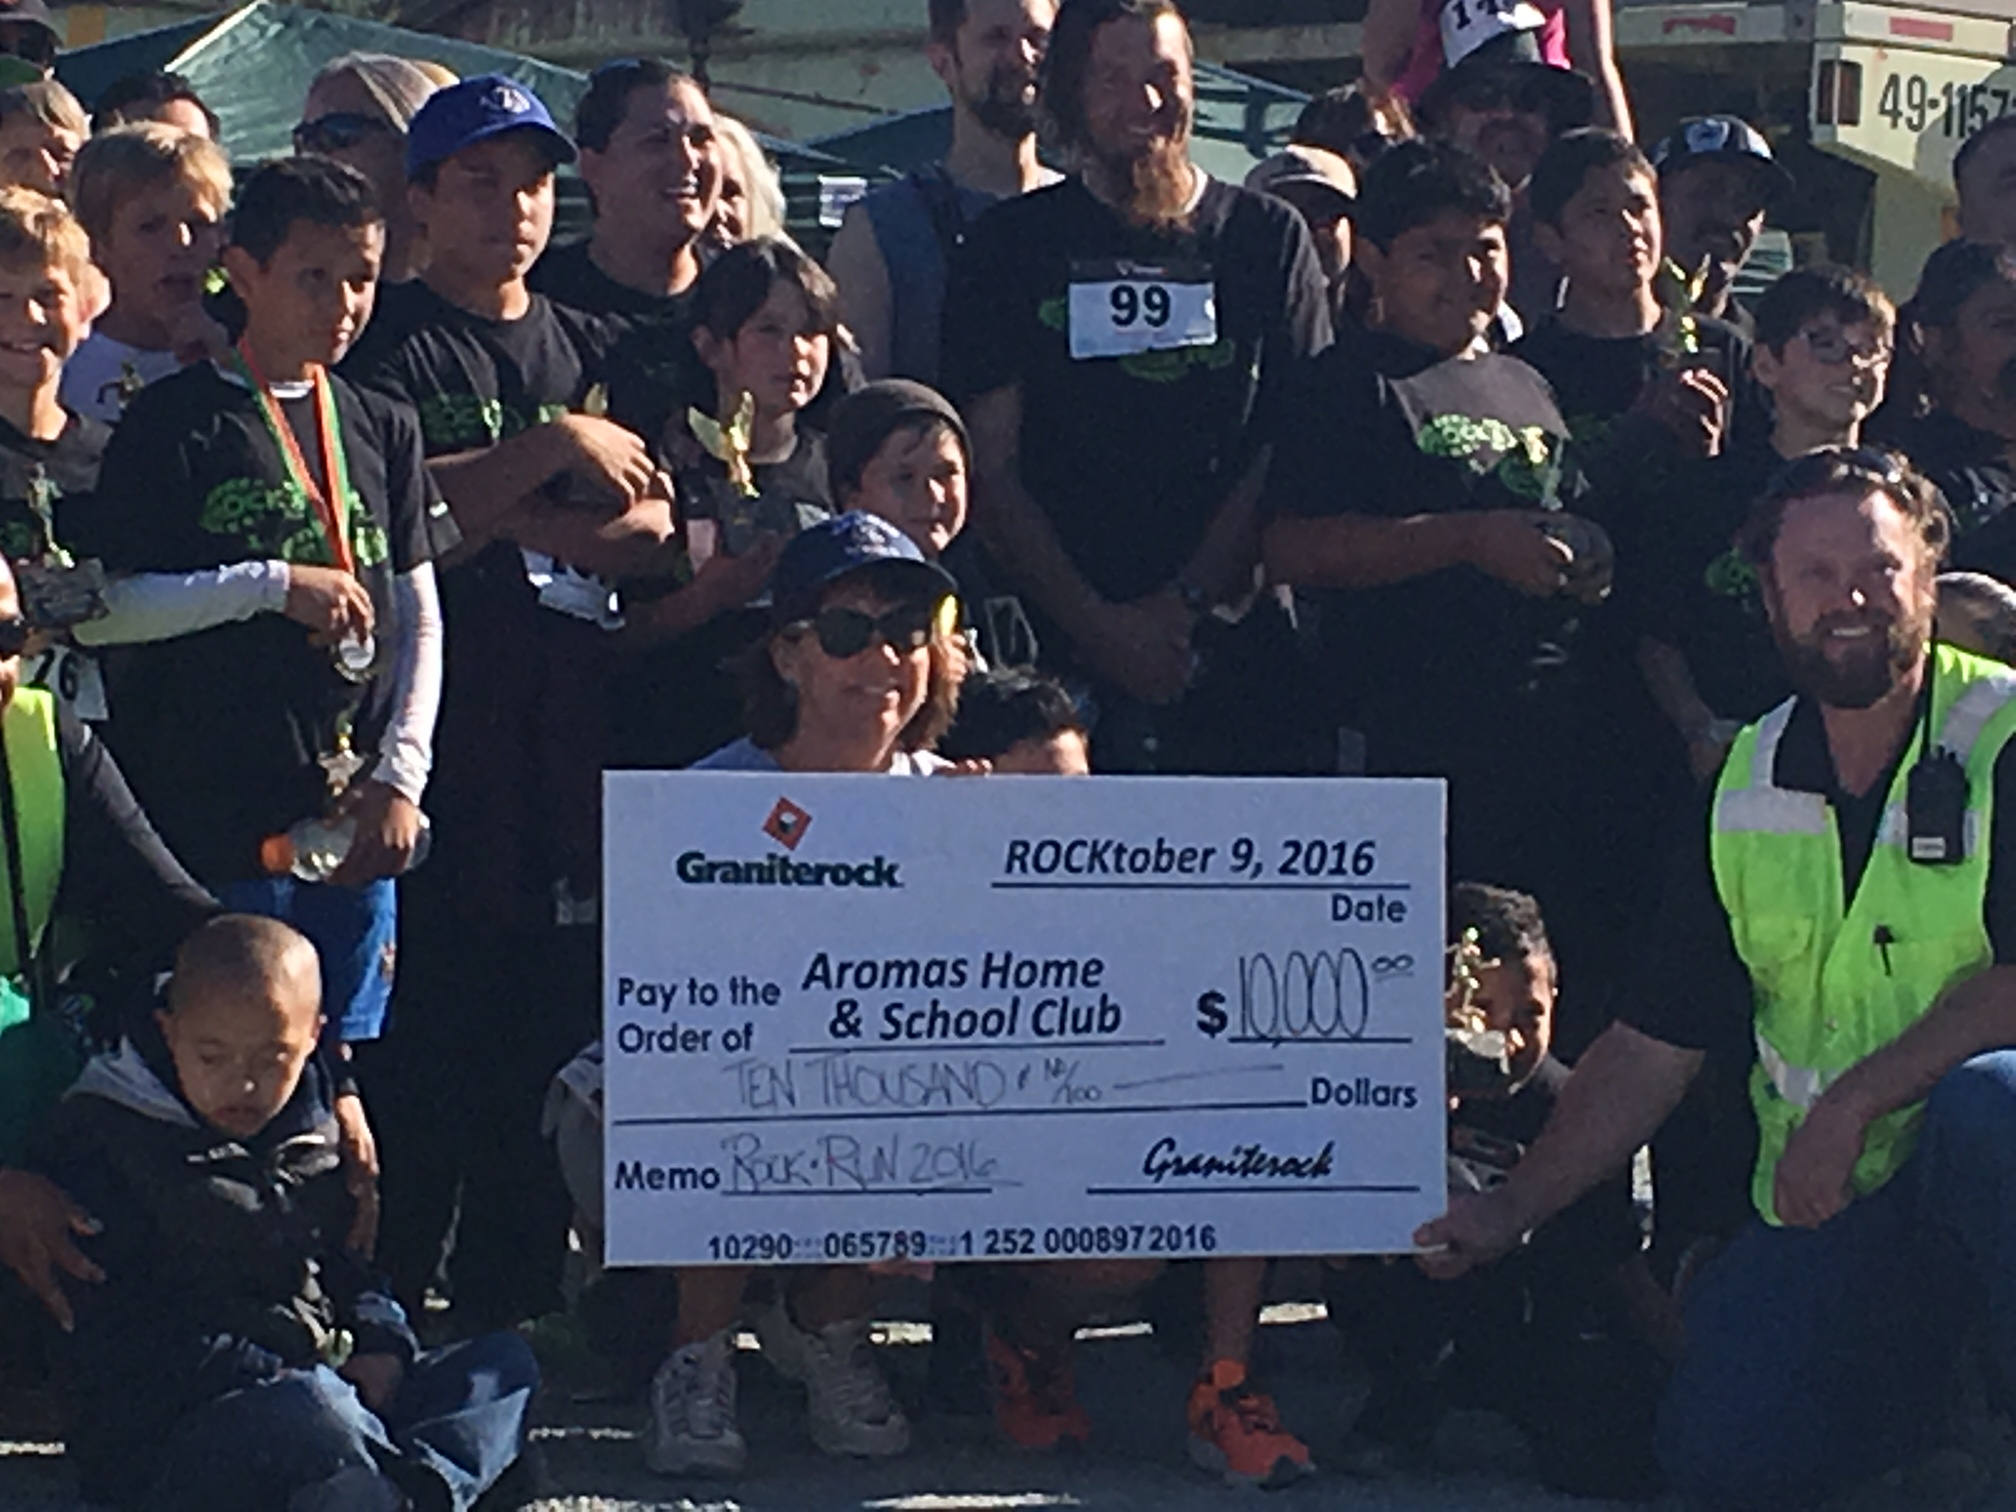 $10,000 for Aromas School